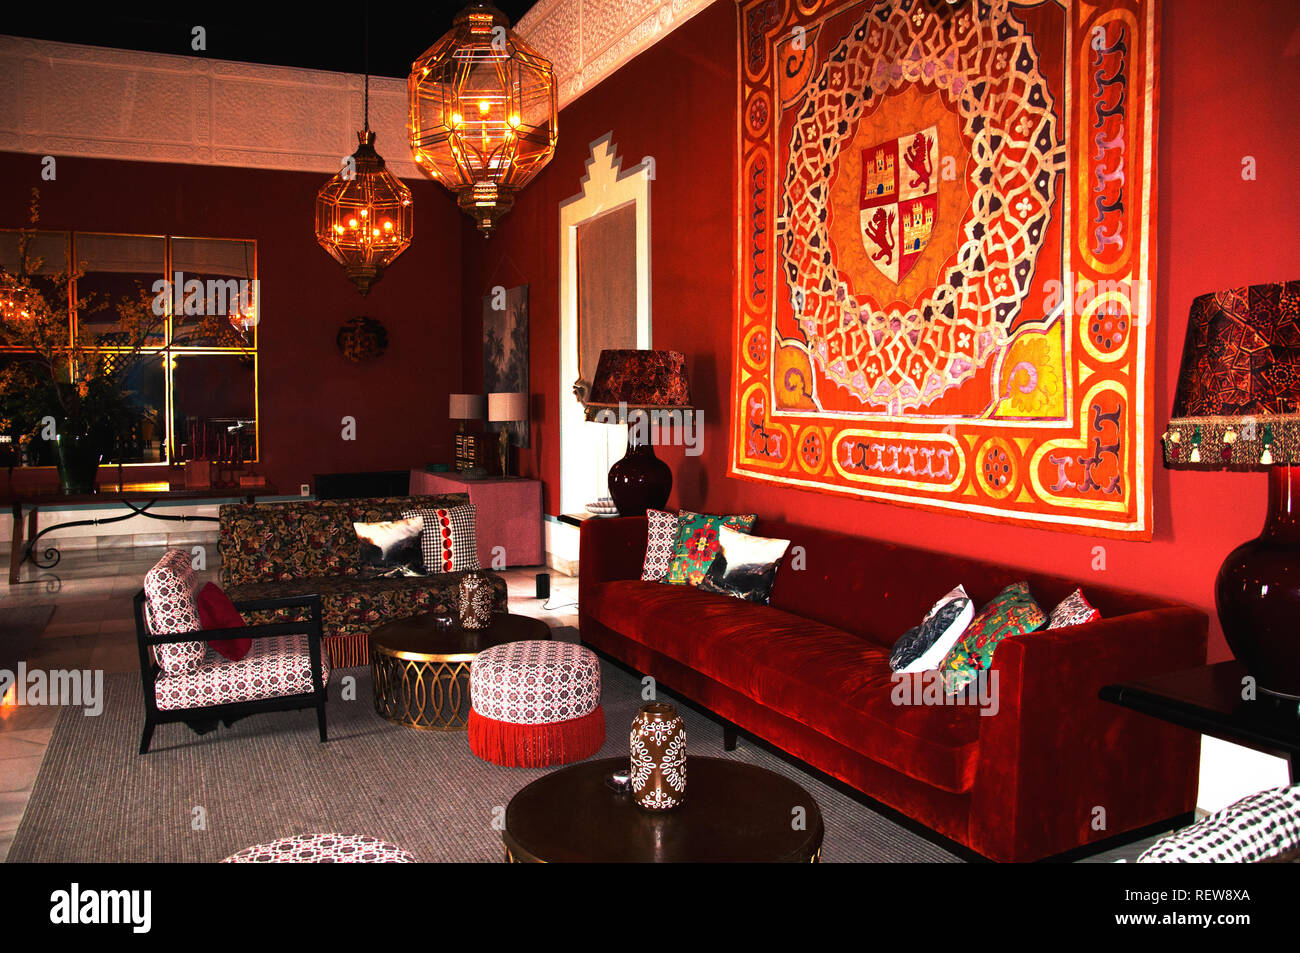 Old classical spanish interior with big red velvet sofa, different ...